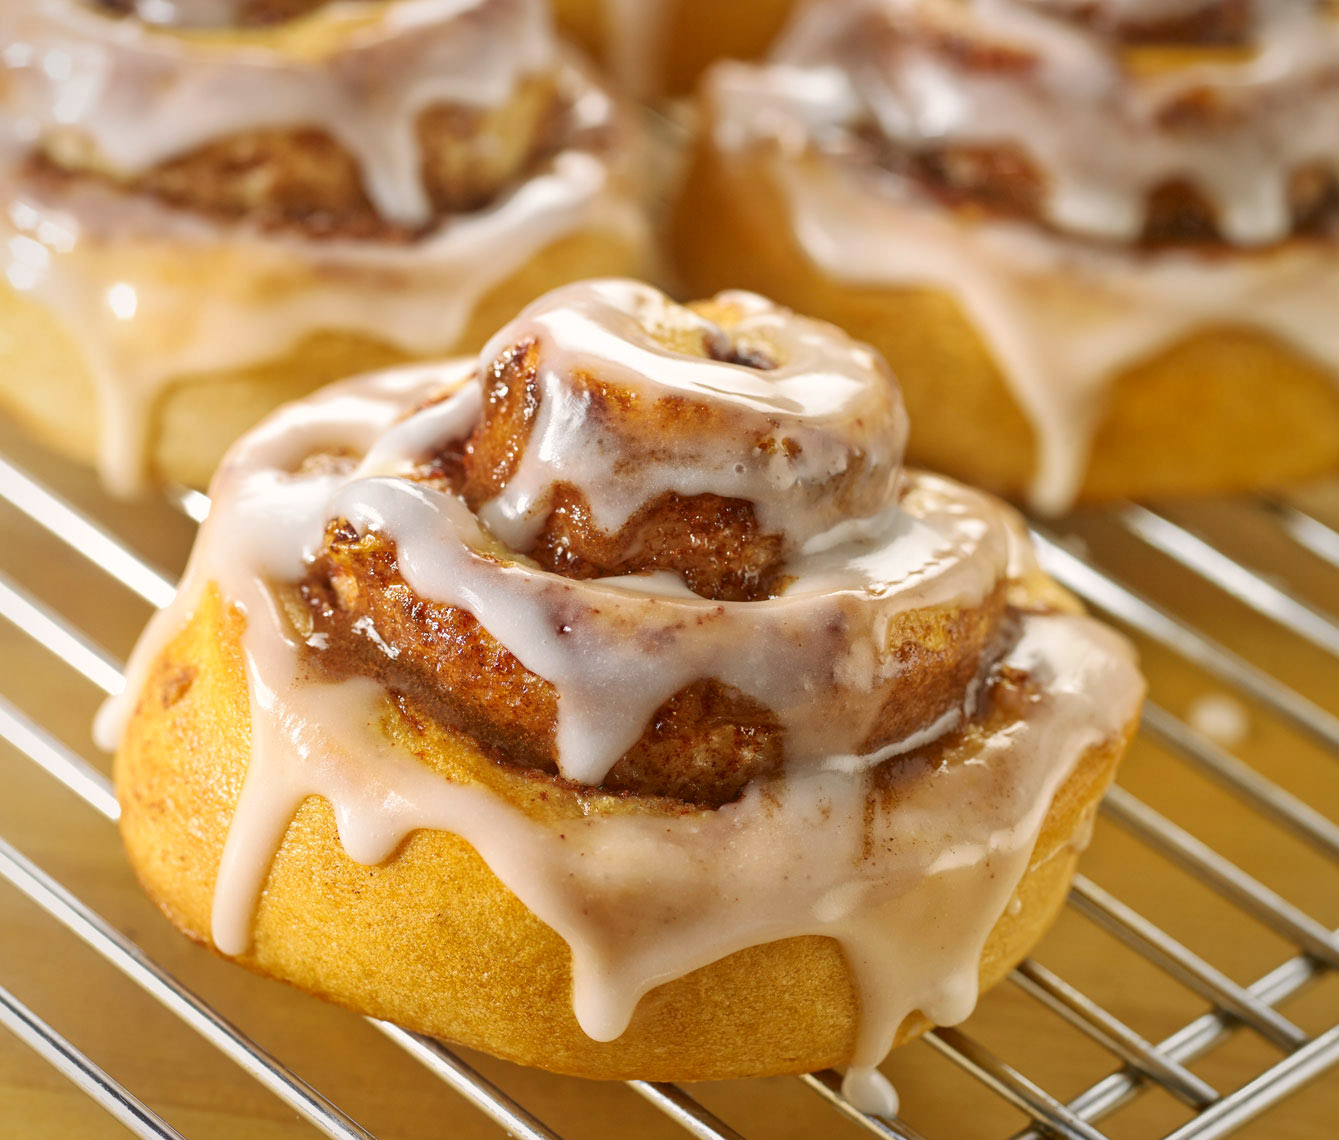 Cinnamon rolls with dripping frosting on a cooling rack. Food photography, InsideOut Studios.